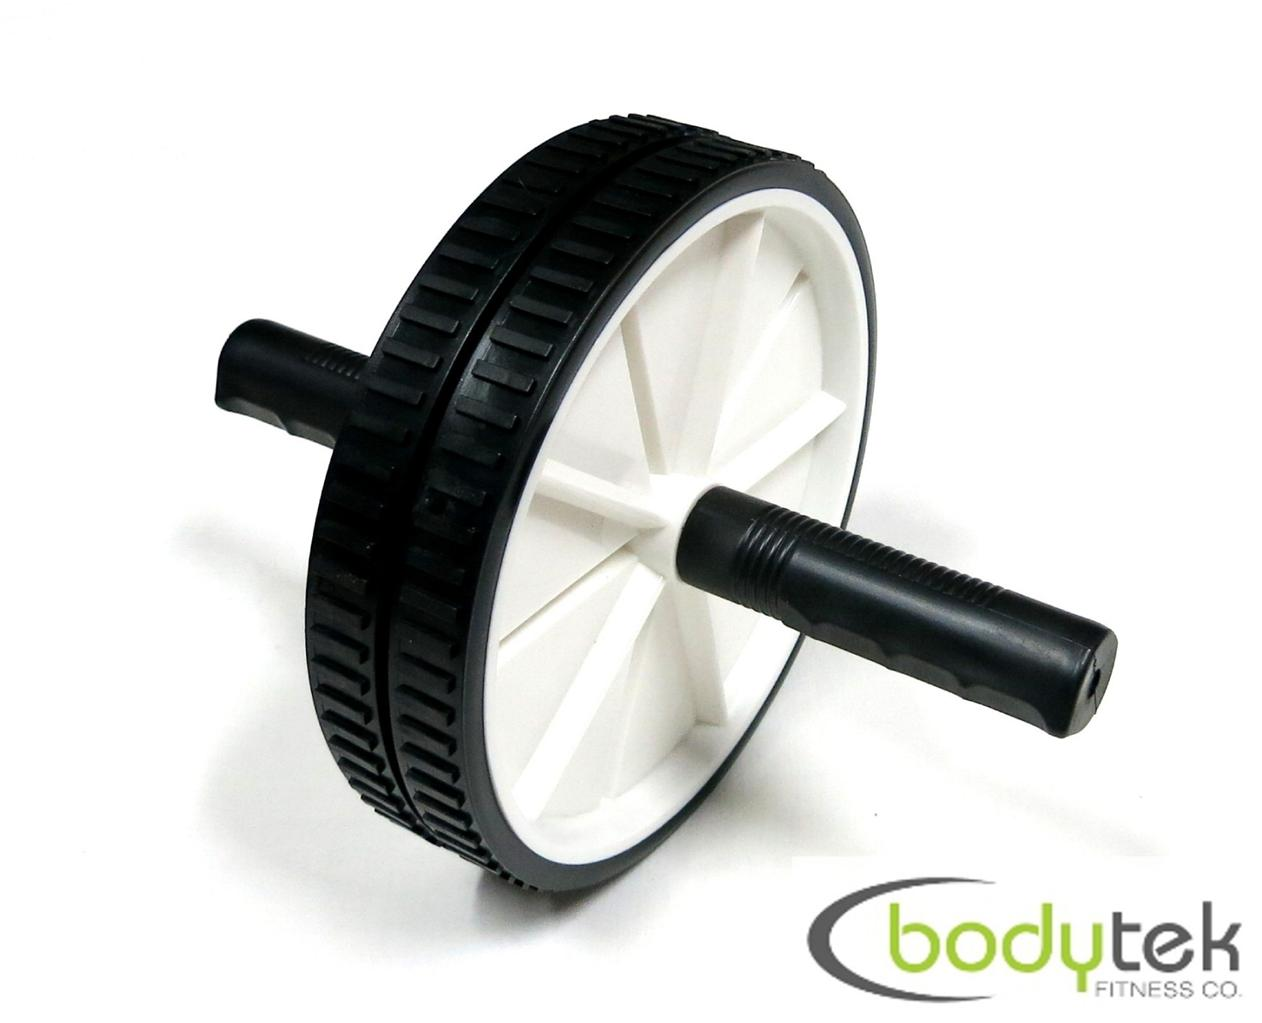 Crossfit-MMA-Ab-Abdominal-Roller-Wheel-Cardio-Home-Gym-Excercise-Core-Fitness